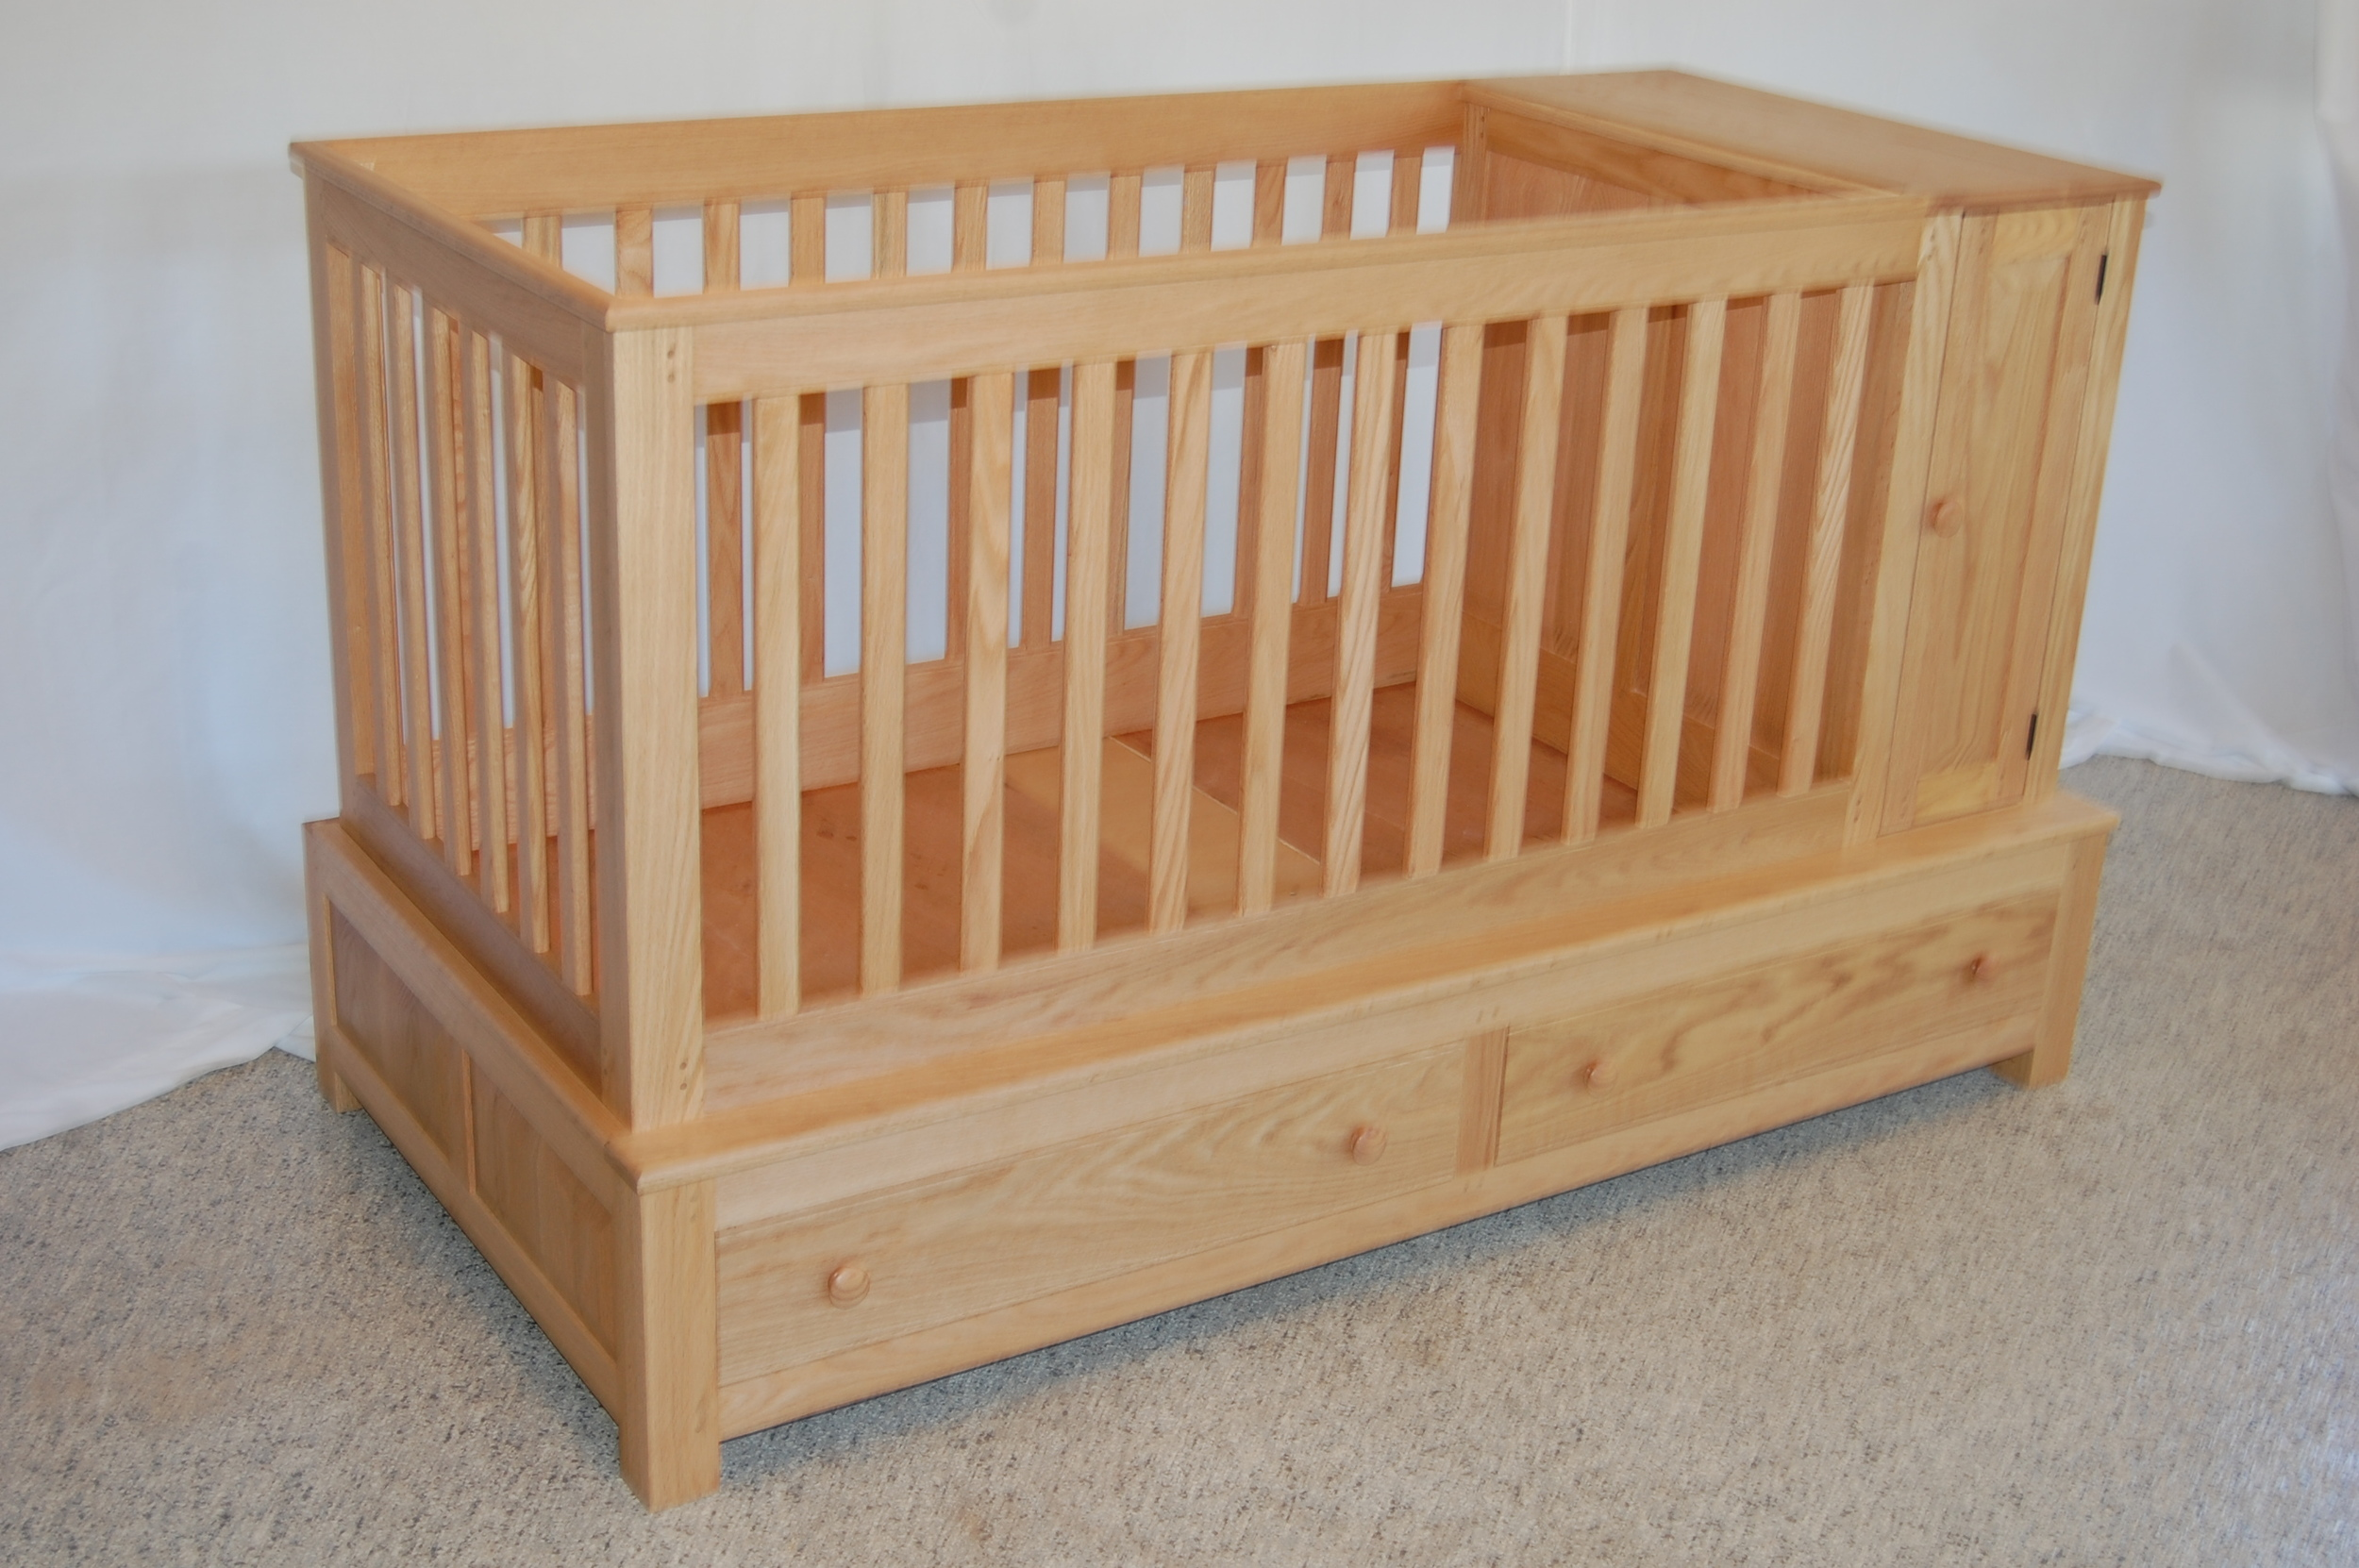 """This crib was made for Abigail,our first granddaughter. It converts into a youth bed once she out grows the crib. Red oak was used to make this piece, except for the drawer bottoms, which are 1/4"""" oak plywood. The platform the mattress rests on is 3/4"""" plywood. There is a cabinet on the right side and two drawers under the crib. The finish is oil and urethane.Dimensions: 661/2""""wide x 40""""high x 35""""deep."""